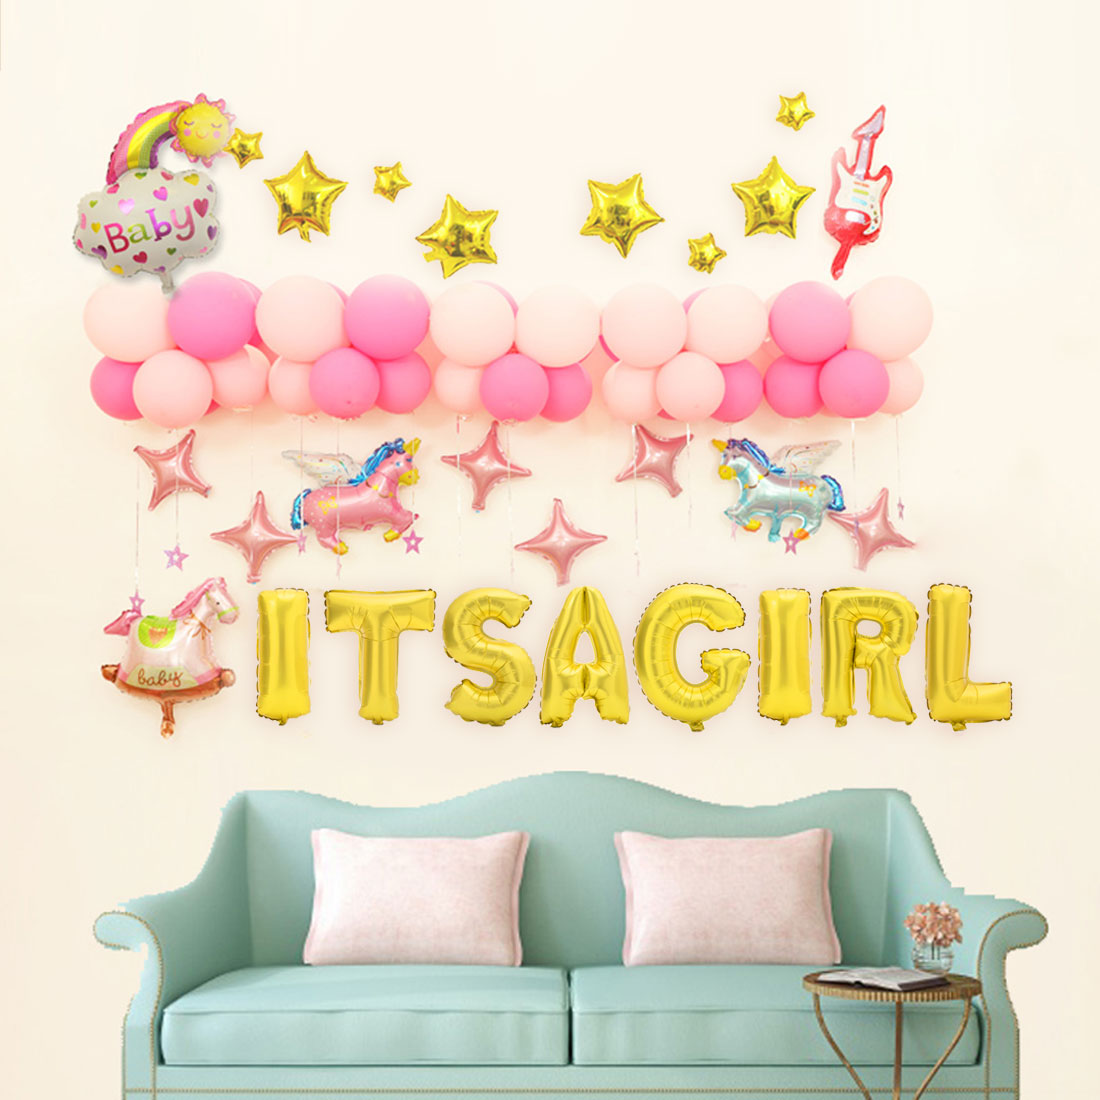 Beautiful Balloon Wall Decorations Pictures Inspiration - The Wall ...